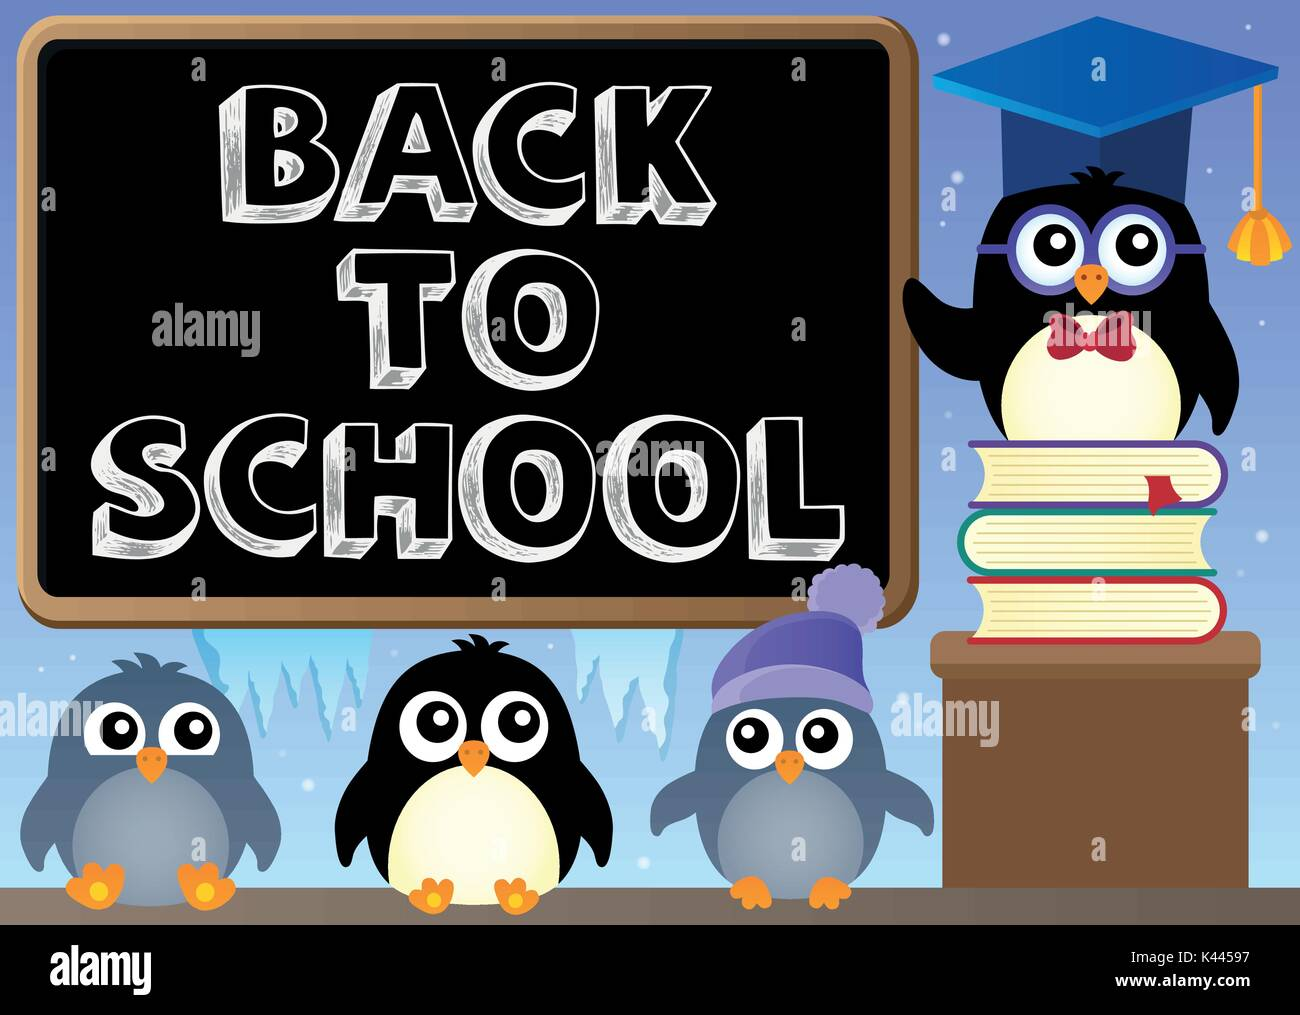 Free Vector | Back to school design with cute owl on a sign